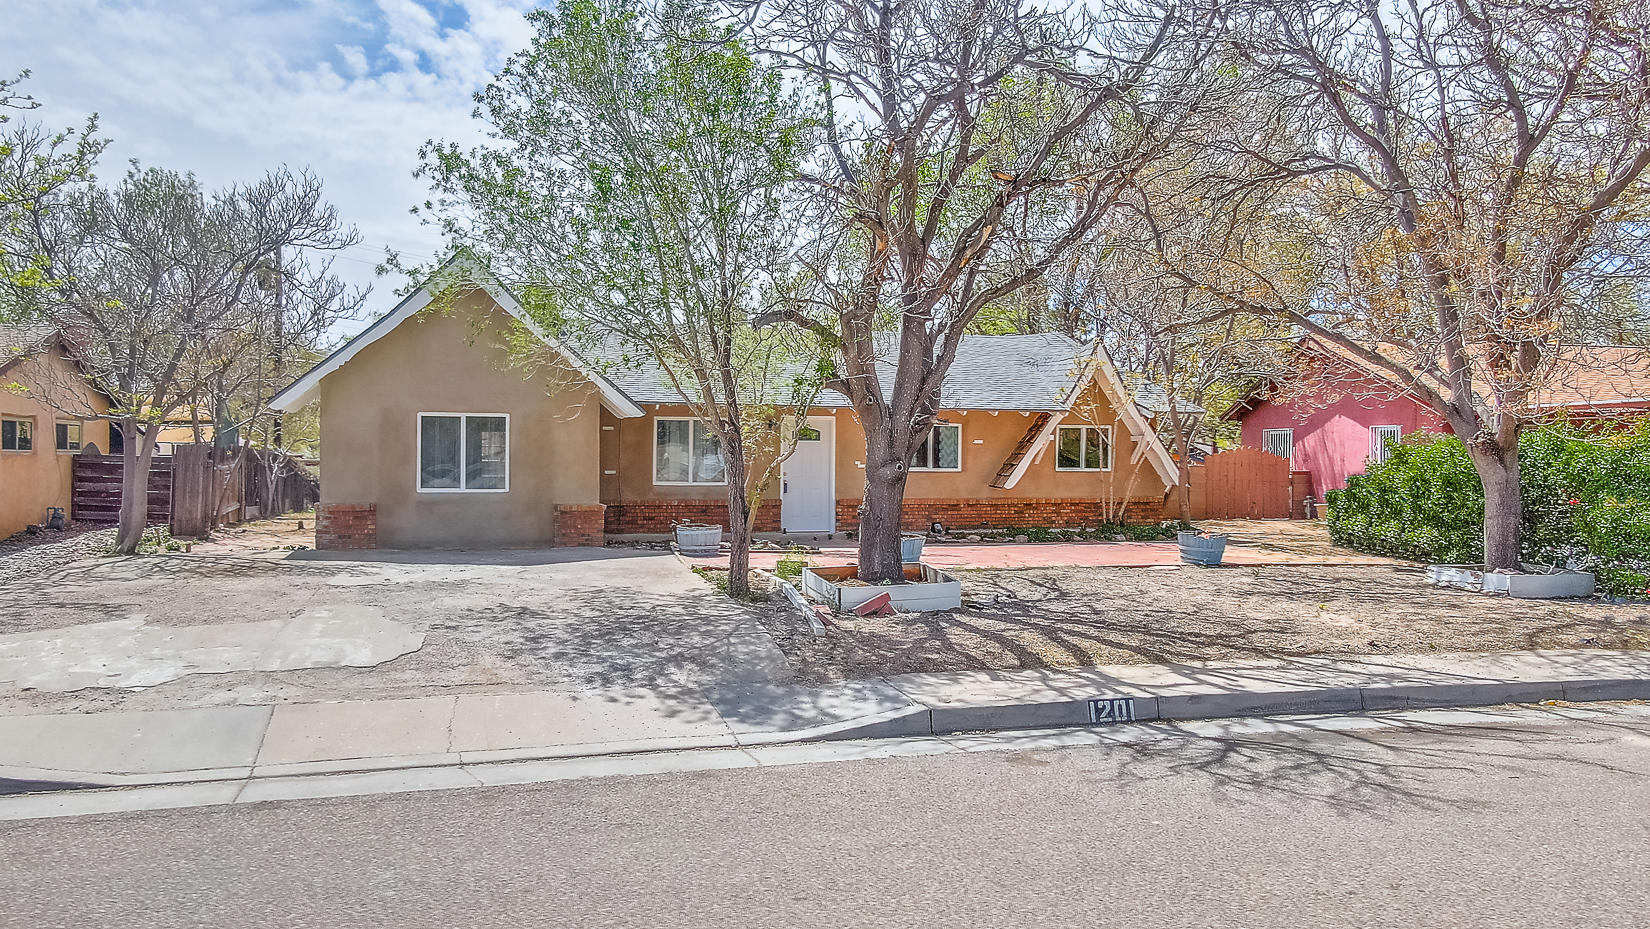 This house is cute as a button!  Charming property on .21 acres has a fantastic flowing floorplan with a family room and cozy living room with wood burning fireplace. The bright kitchen has crisp white cabinetry, tile backsplash and stainless gas stove. New laminate in family and living rooms! The large backyard has a covered patio and is the perfect canvas to turn into your dream yard. Convenient location has easy freeway access. This home is absolutely perfect - book your tour today!